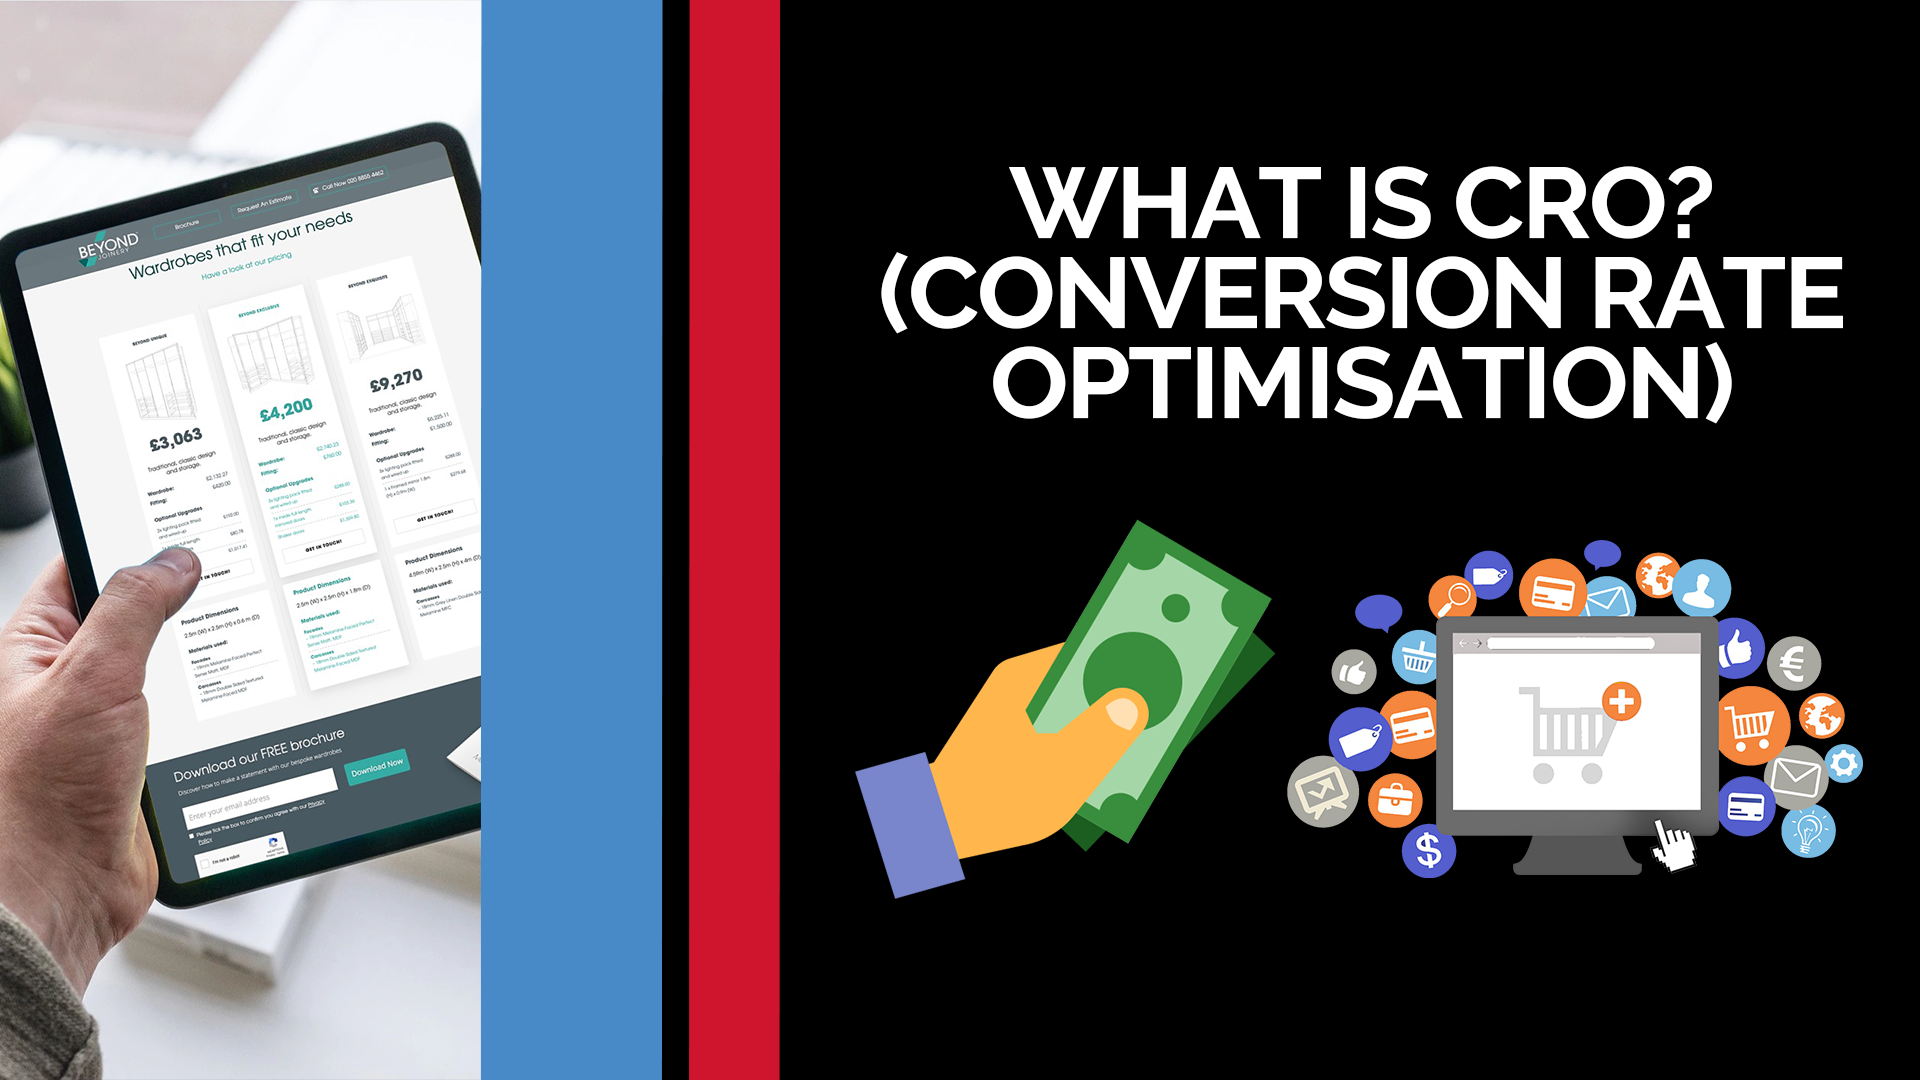 What is conversion rate optimisation?